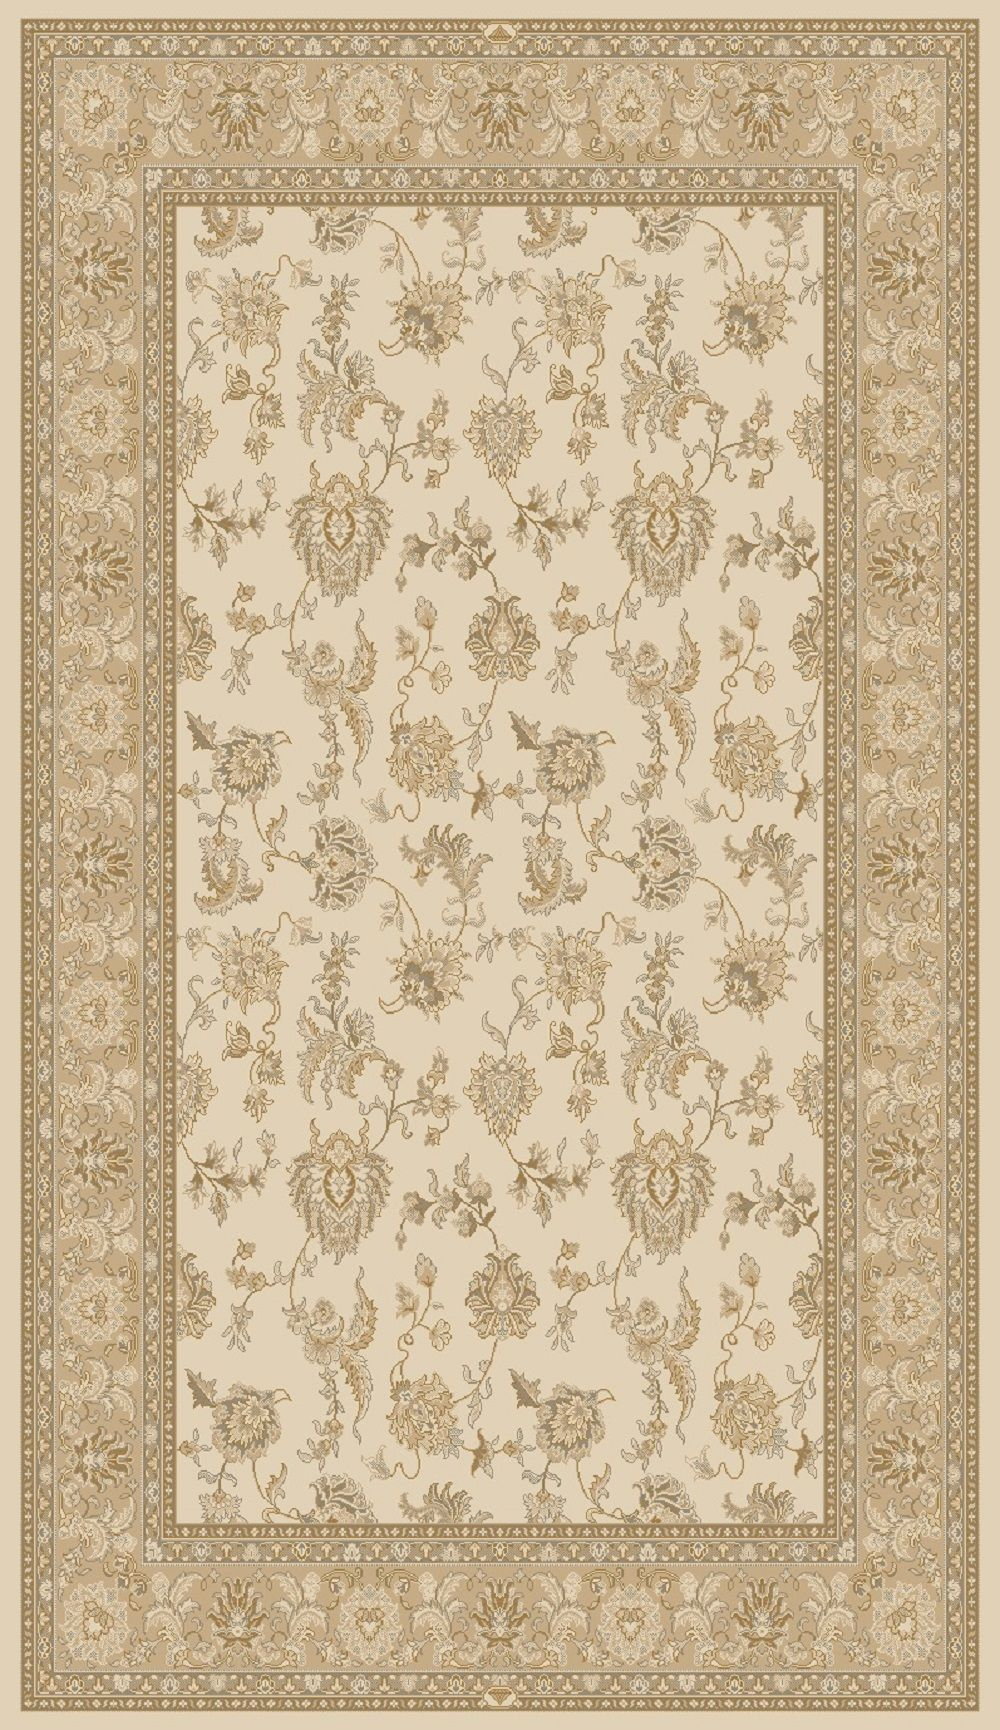 Dynamic Rugs Brilliant Classic Ivory 7226 Area Rug